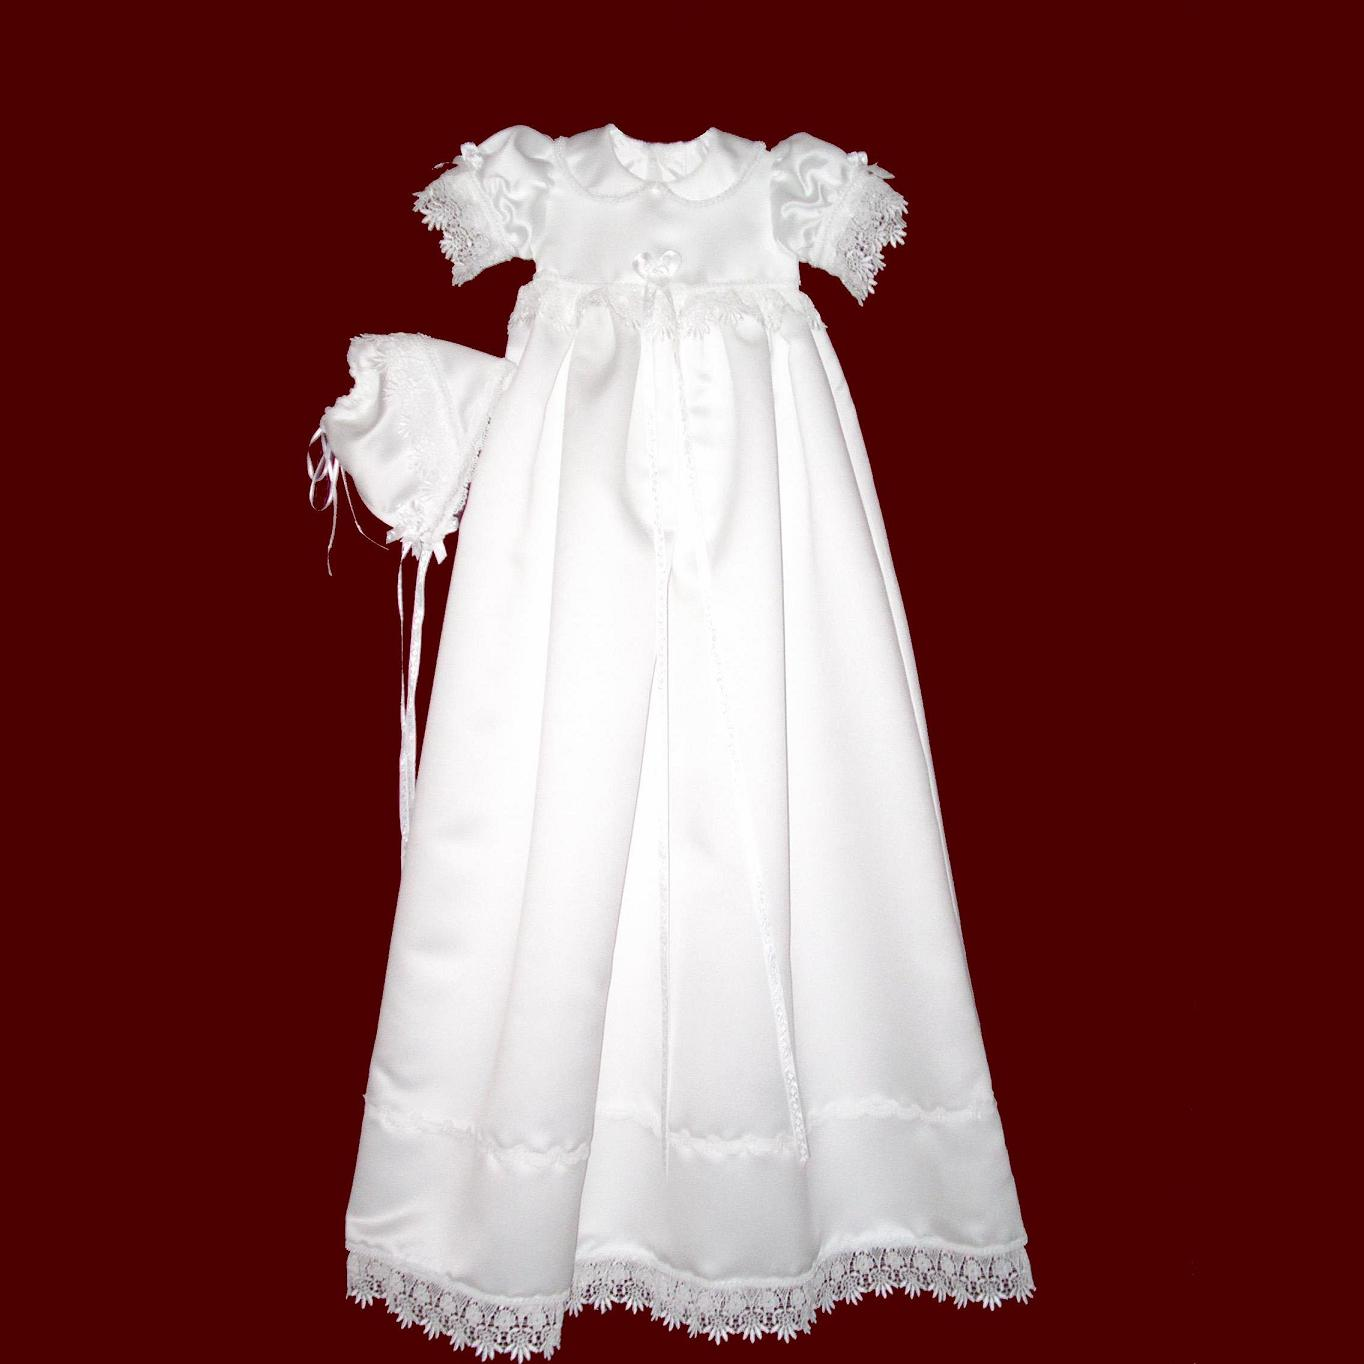 Christening Gowns From Wedding Dresses: Girls Satin Christening Gown With Venice Lace And Bonnet